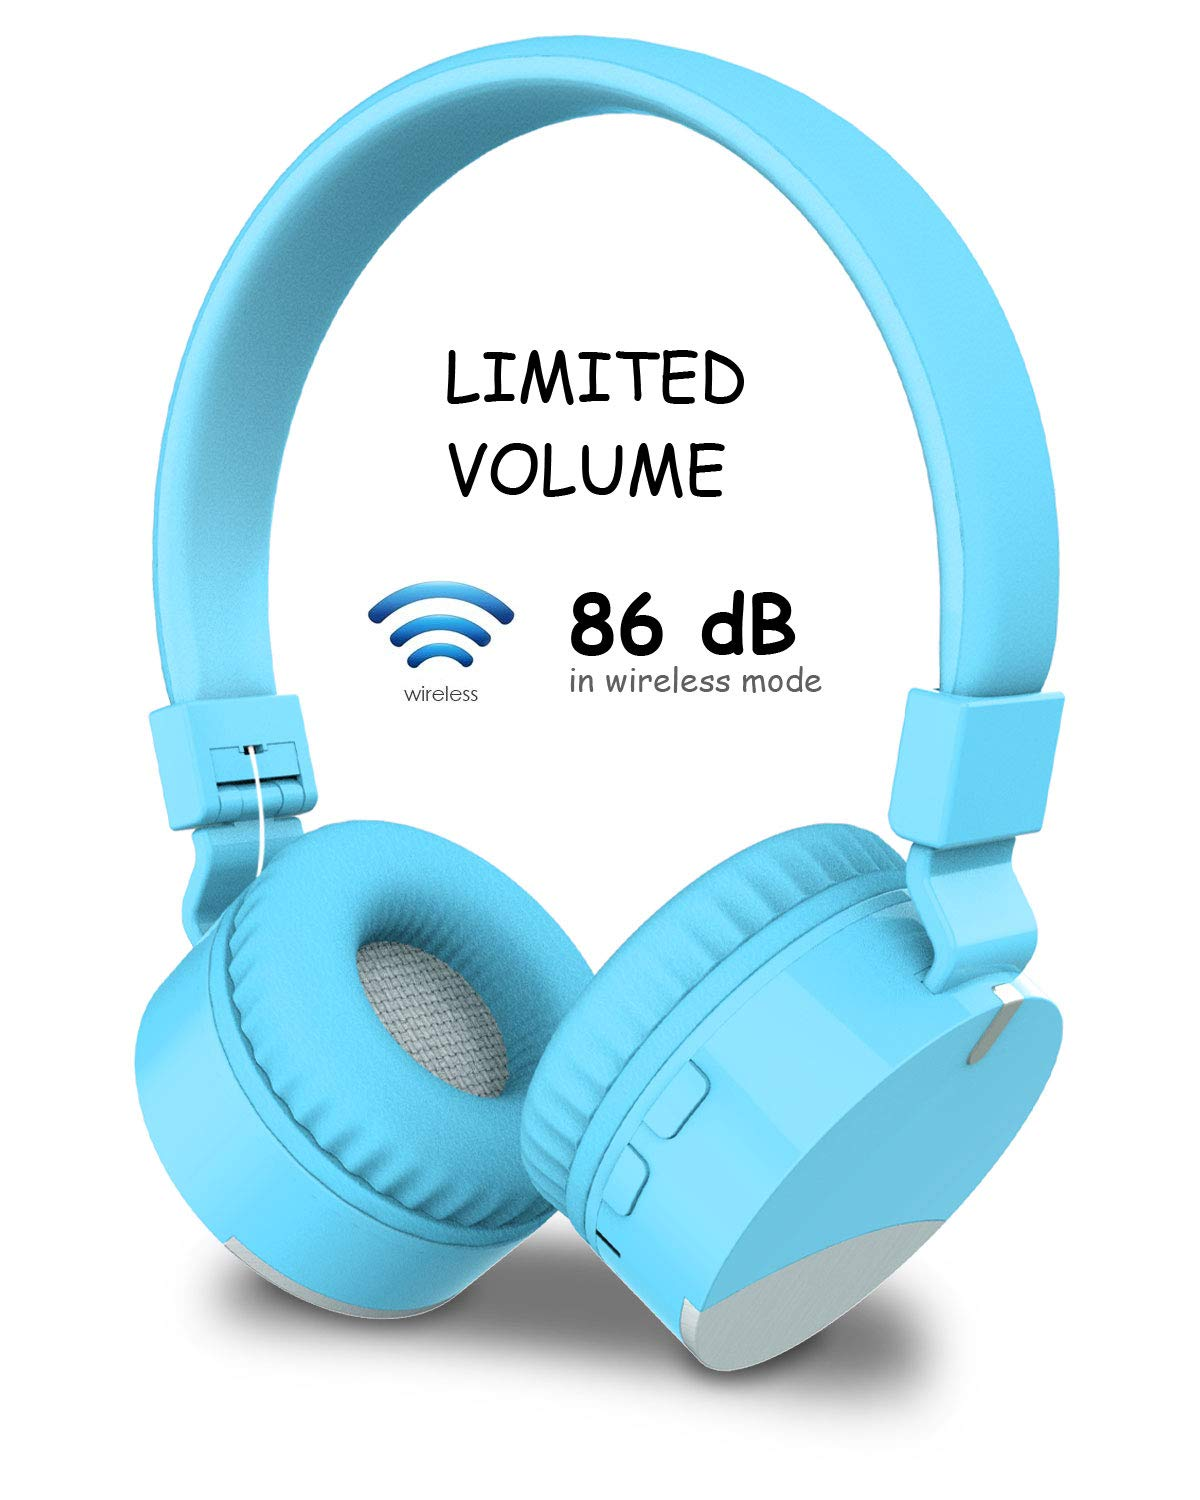 Kids Bluetooth Headphones Wireless Headsets, DHOZA Gorsun Foldable Earphones Stereo Sound Over Ear with Microphone for Girls Boys Children Compatible with iPhone/iPad/Smartphones/Laptop/PC/TV (Blue)